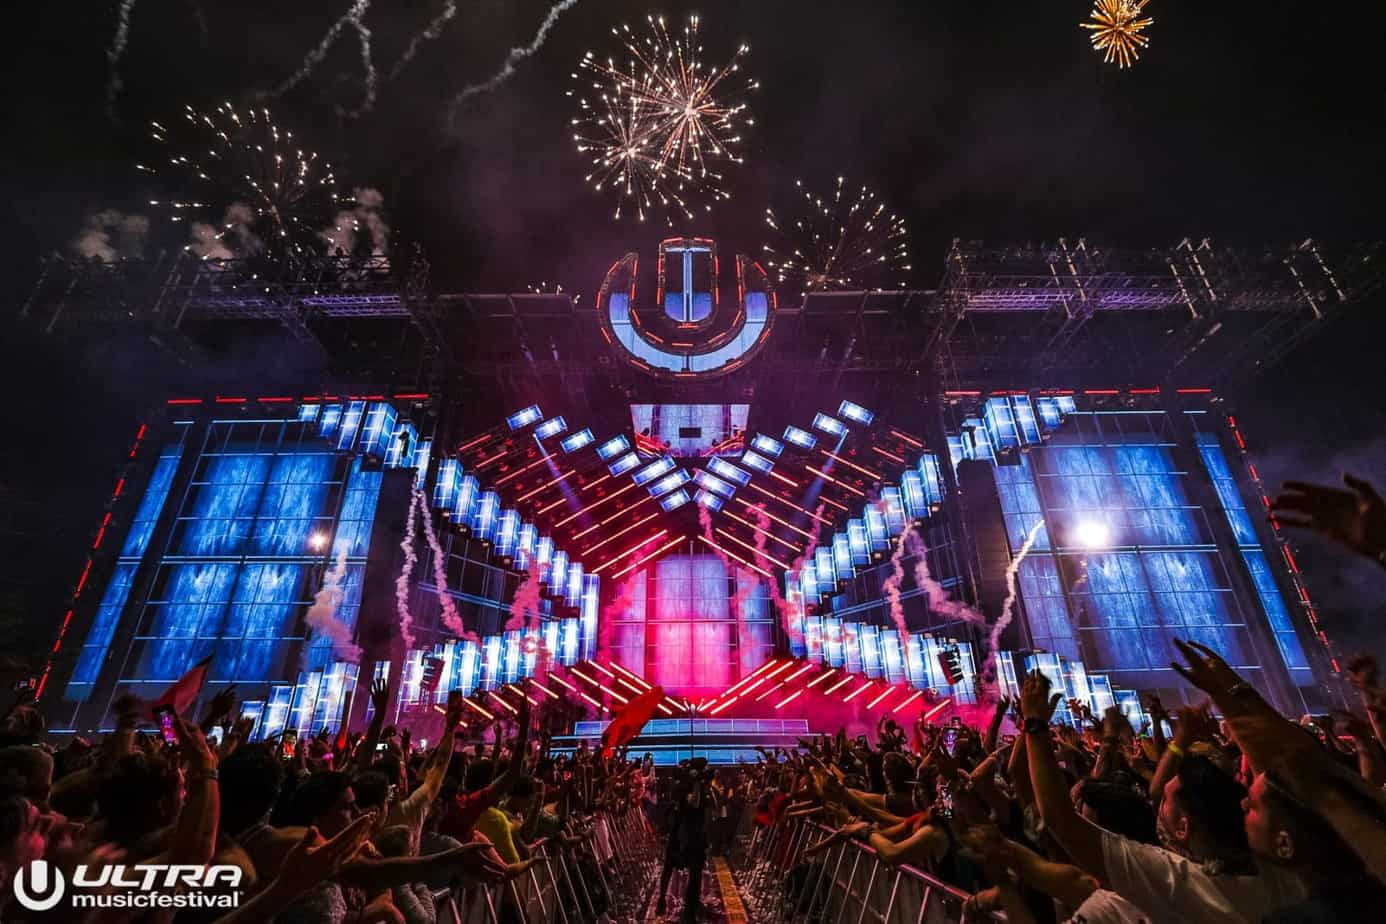 Photo of Ultra 2019 was Quite a Sight